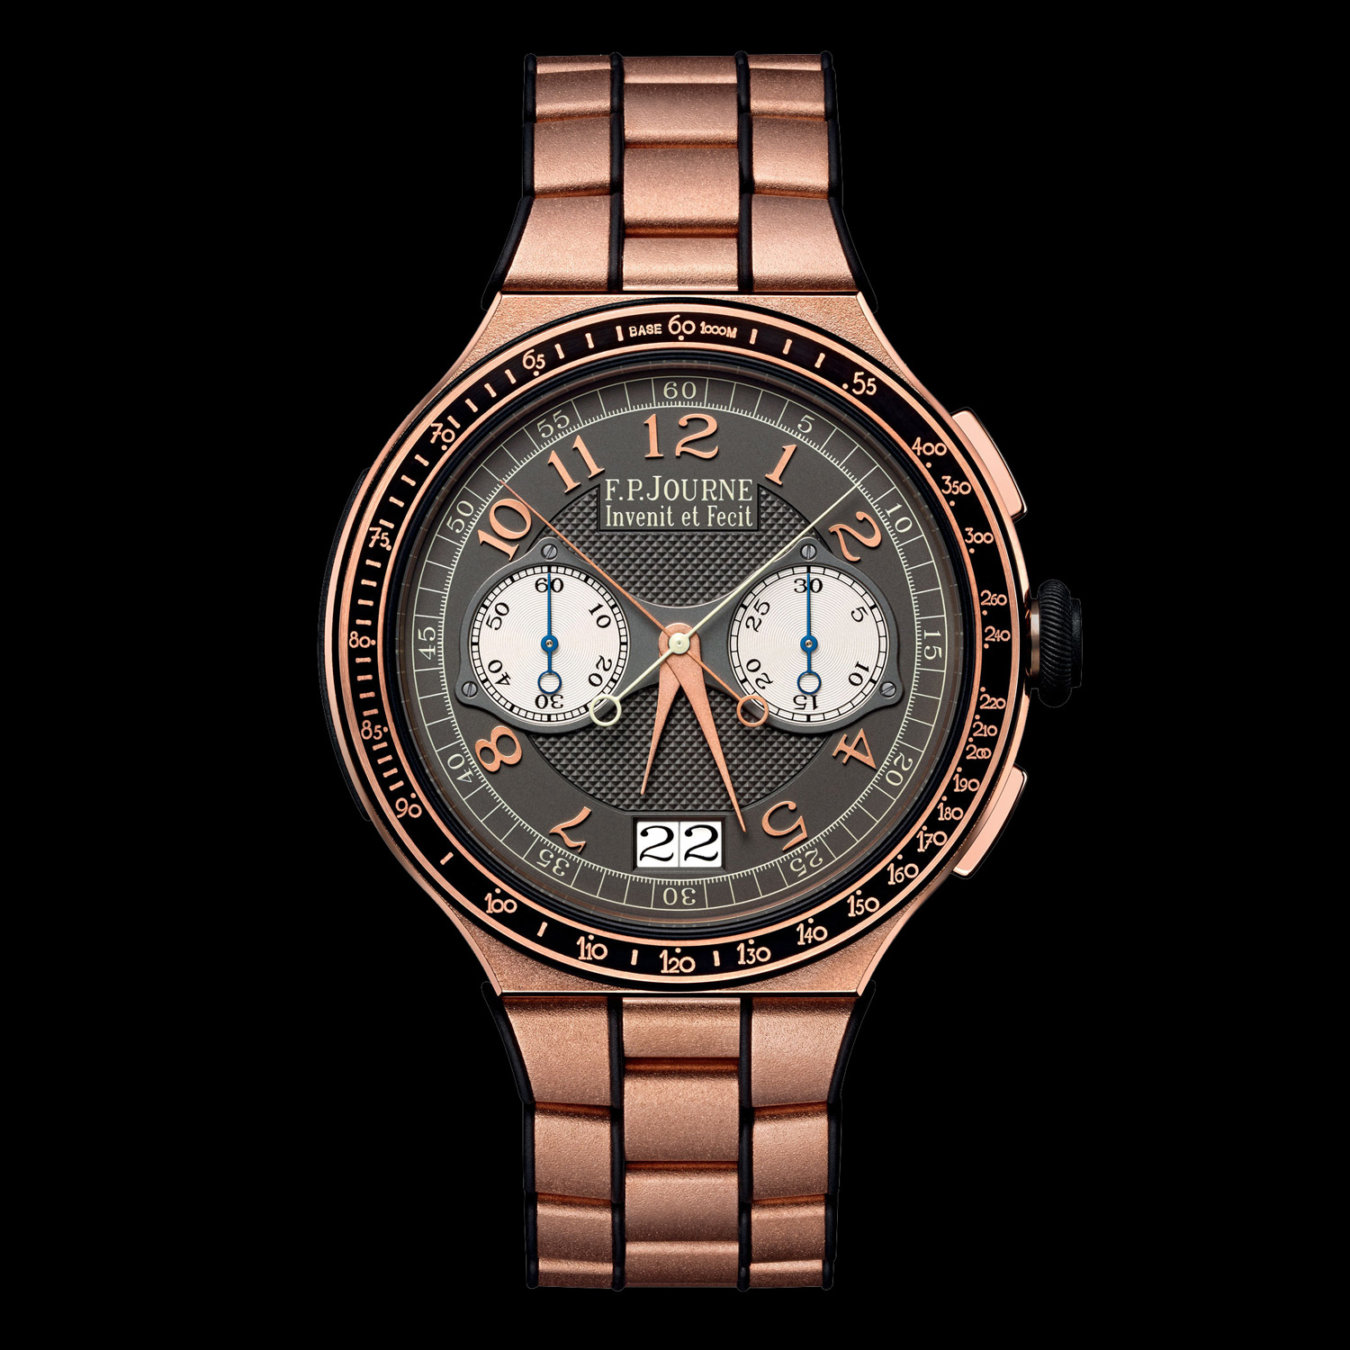 f.p.journe chronographe monopoussoir rattrapante rose gold price